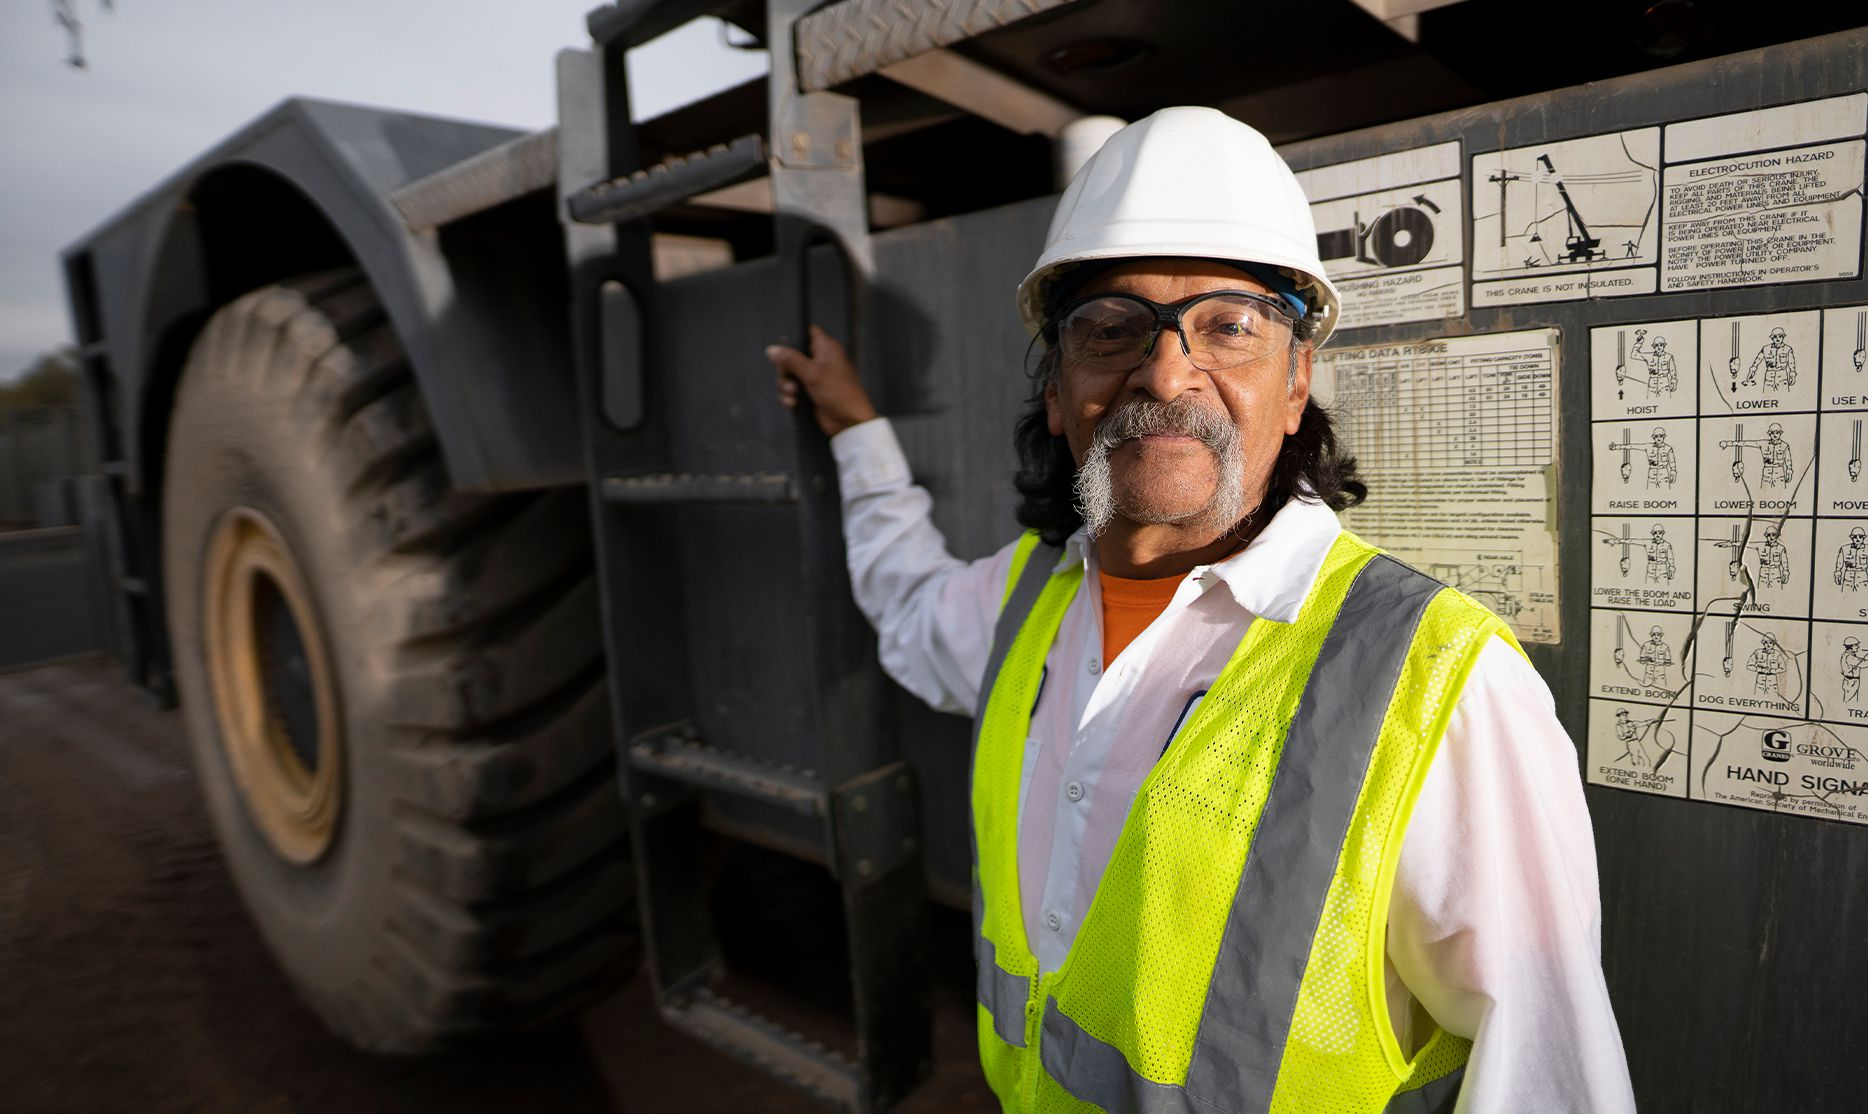 Smith midland worker next to his vehicle